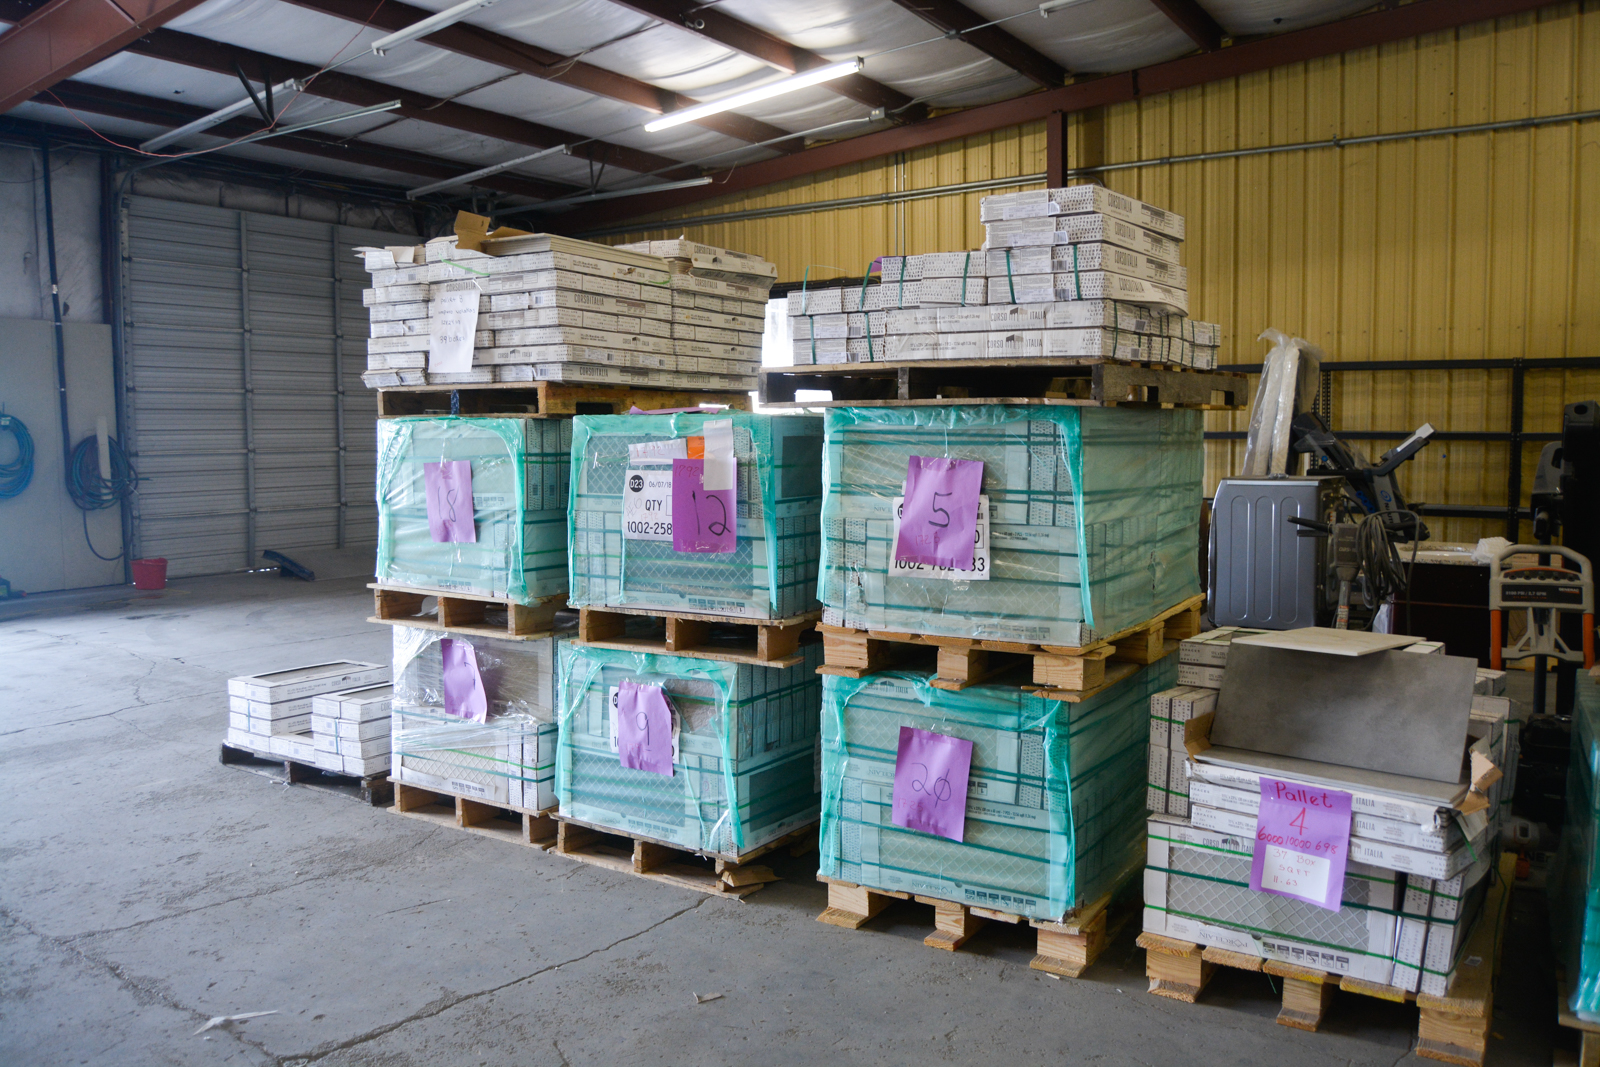 Pallets of new and overstock tile! - 615-829-6020198 Weakley LnSmyrna, TN 37167